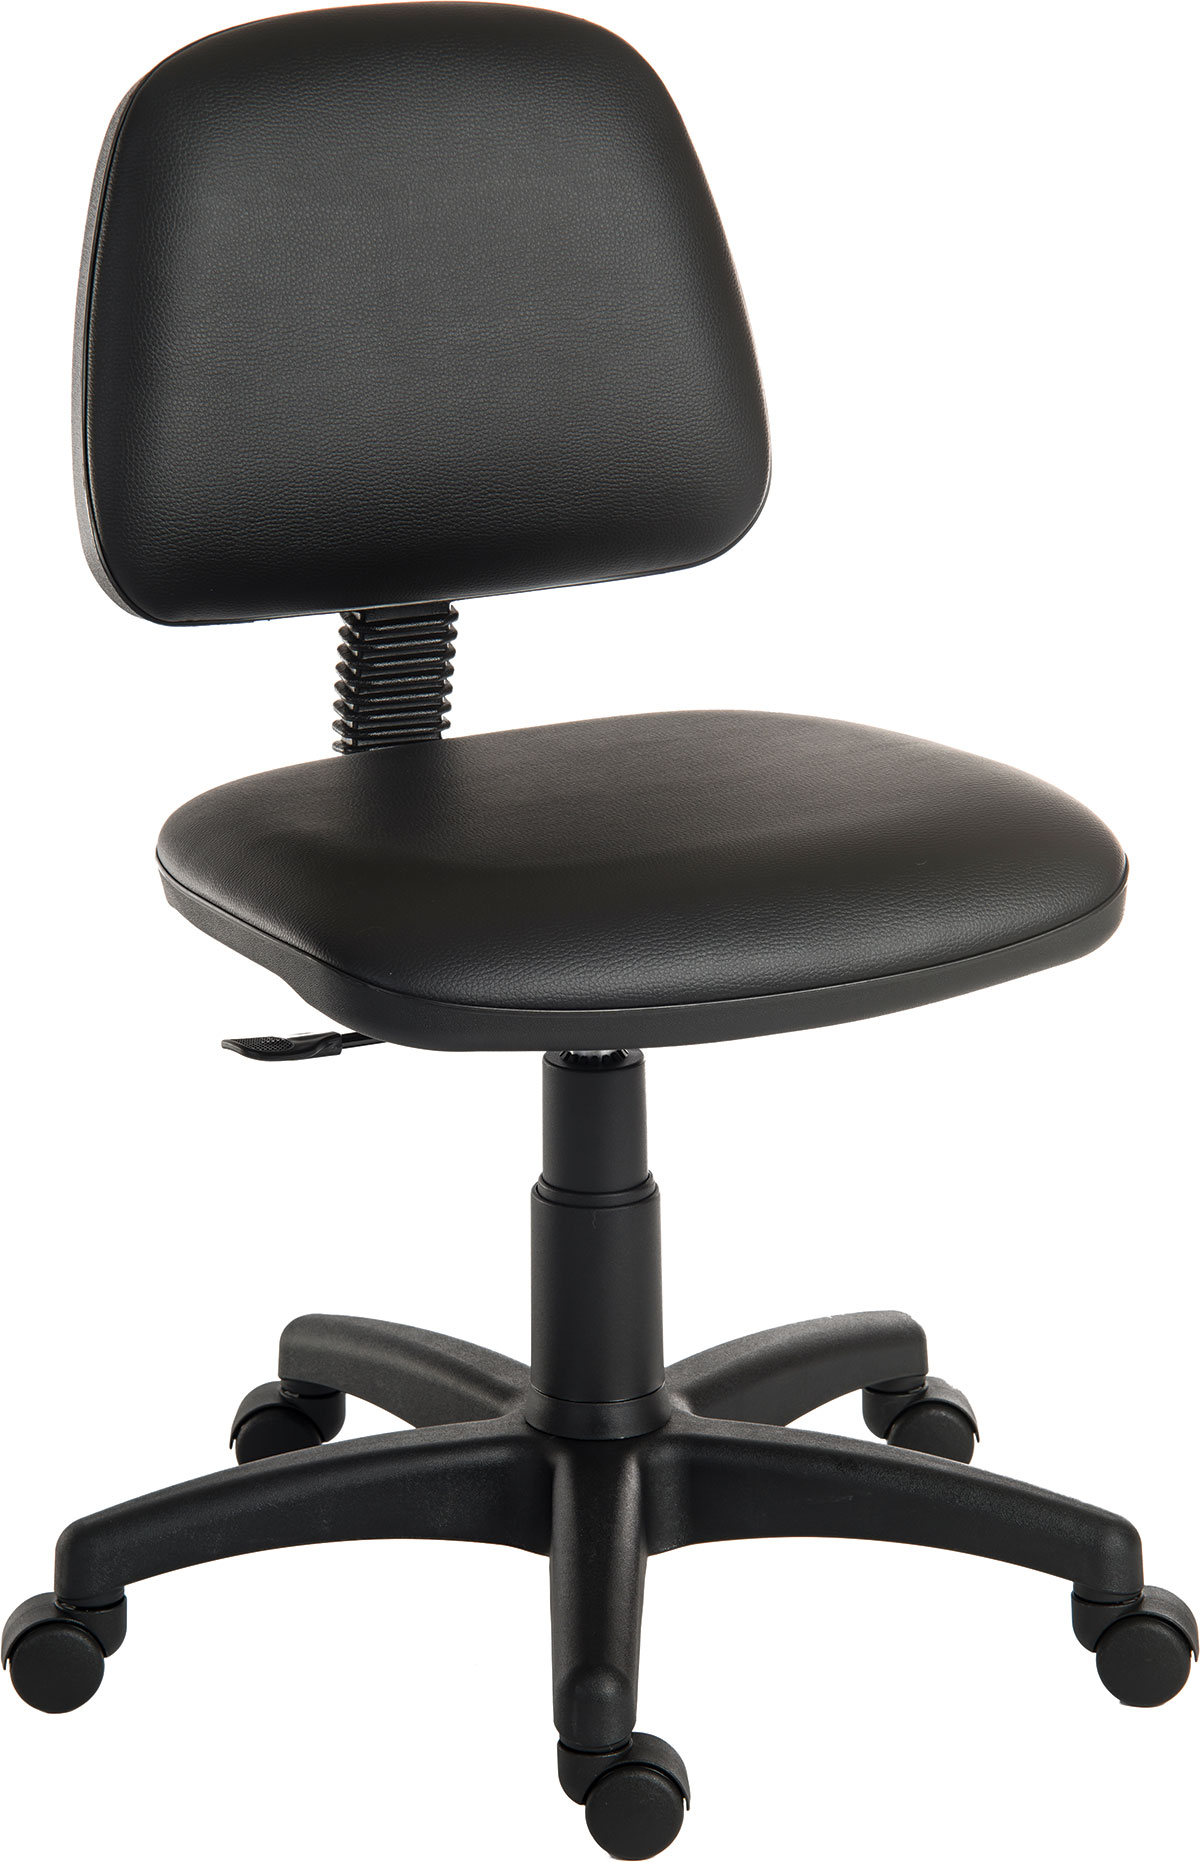 Therapist Stools and Chairs Ergonomic For Sale line